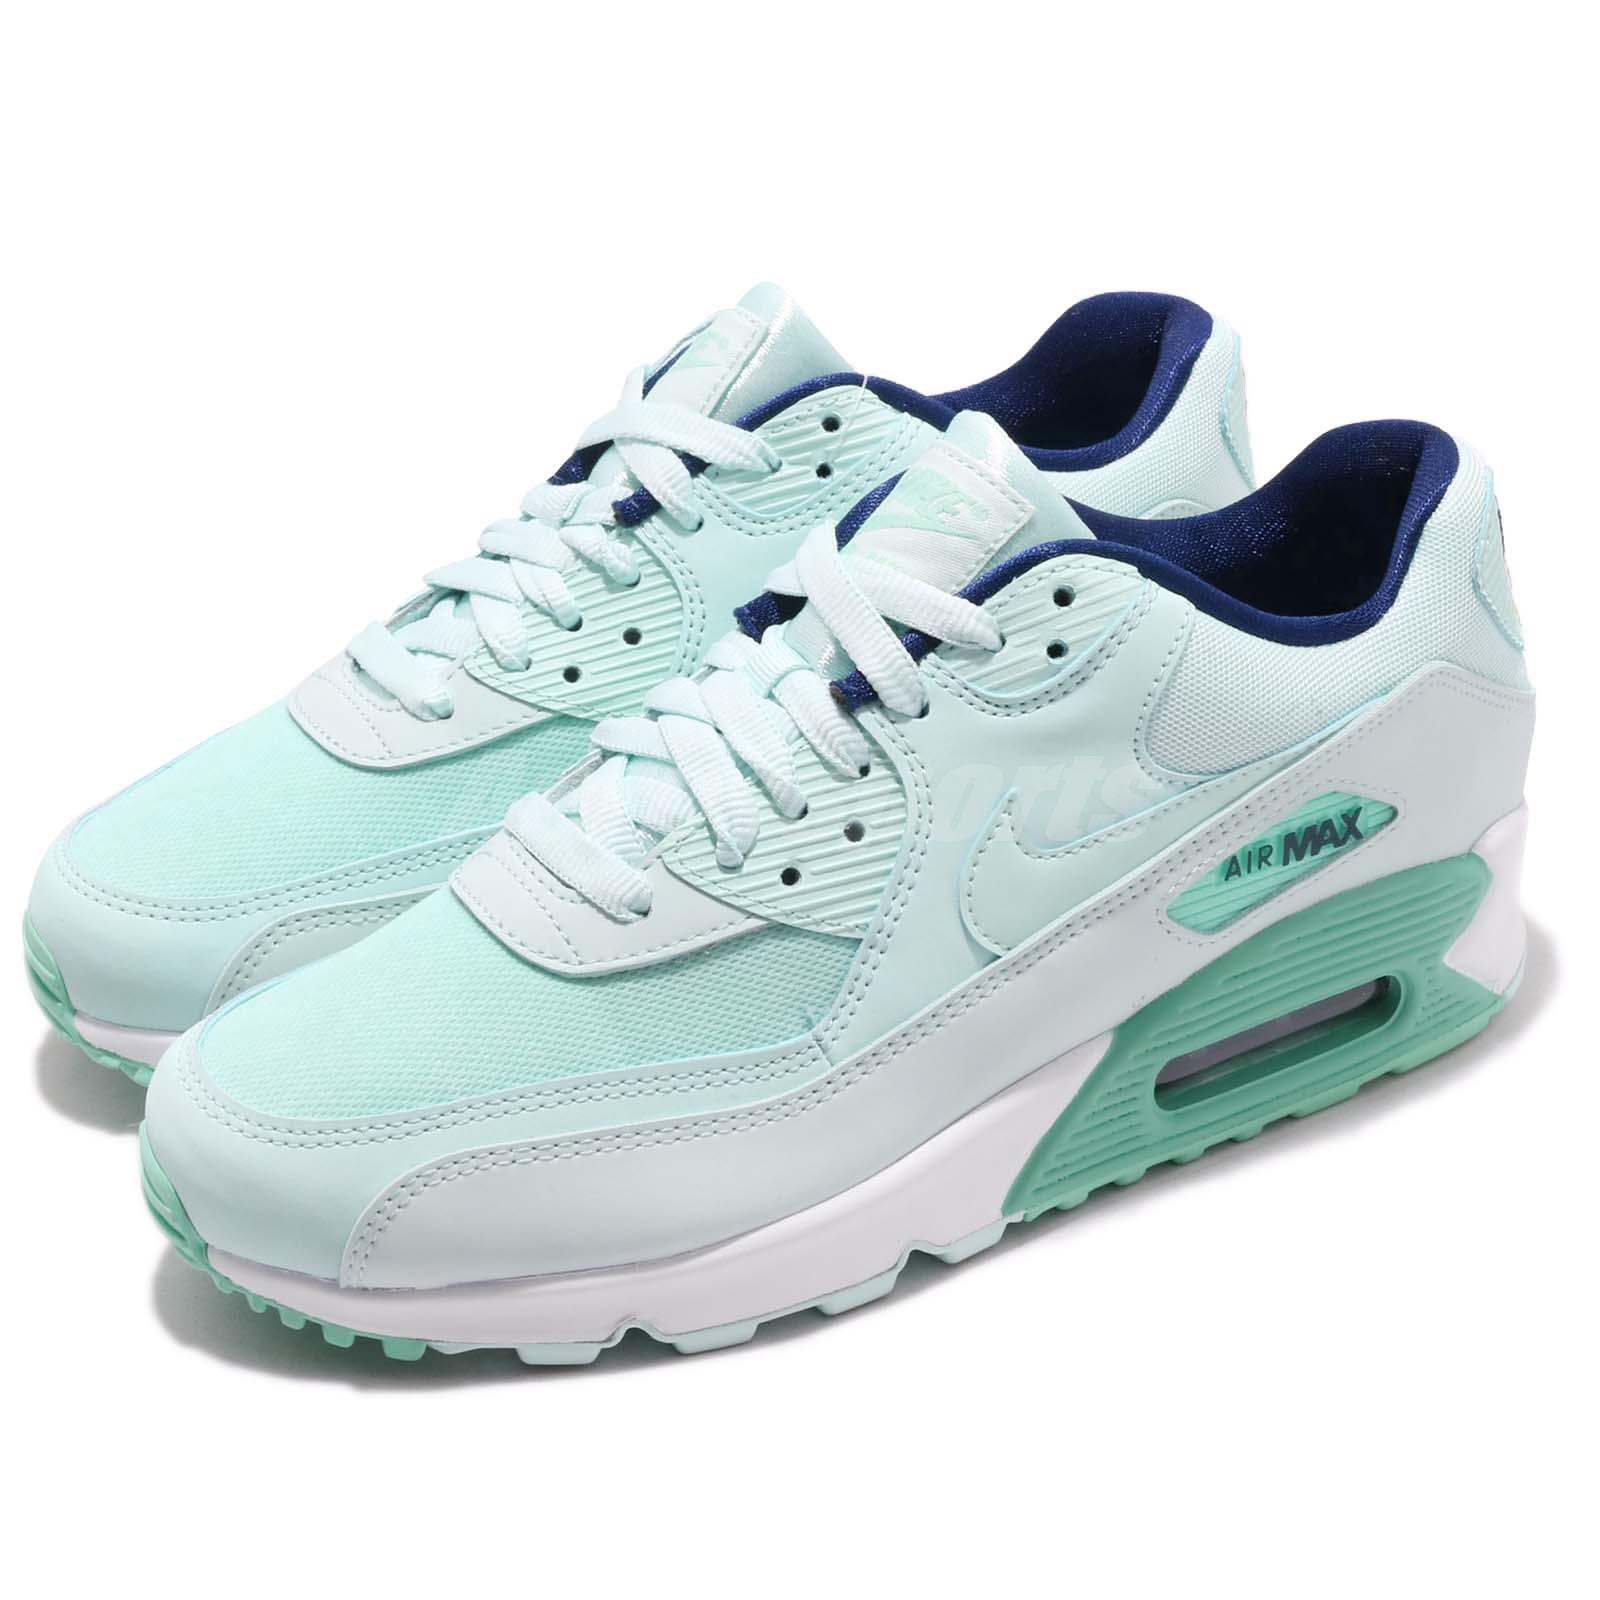 a126aadf36 Details about Nike Wmns Air Max 90 SE Teal Tint Green White Womens Running  Shoes 881105-301